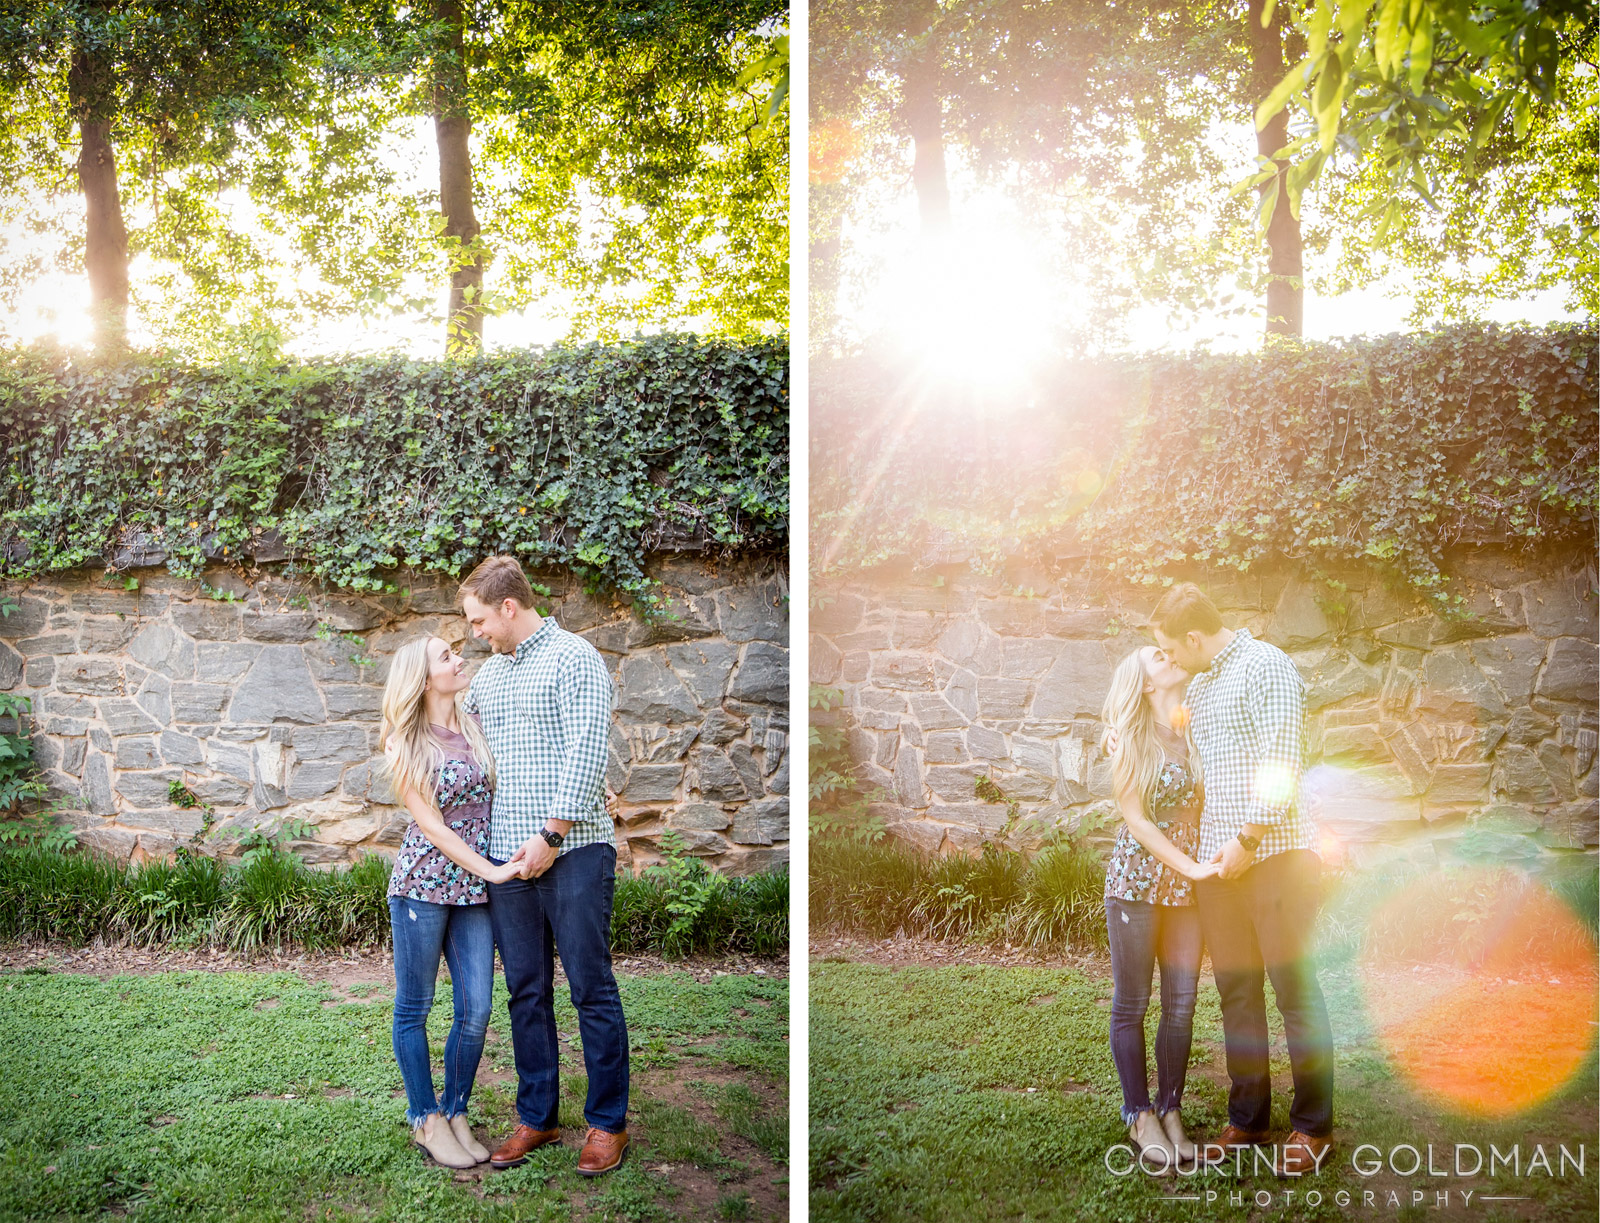 Atlanta-Couples-Engagement-Proposal-Photography-by-Courtney-Goldman-22.jpg